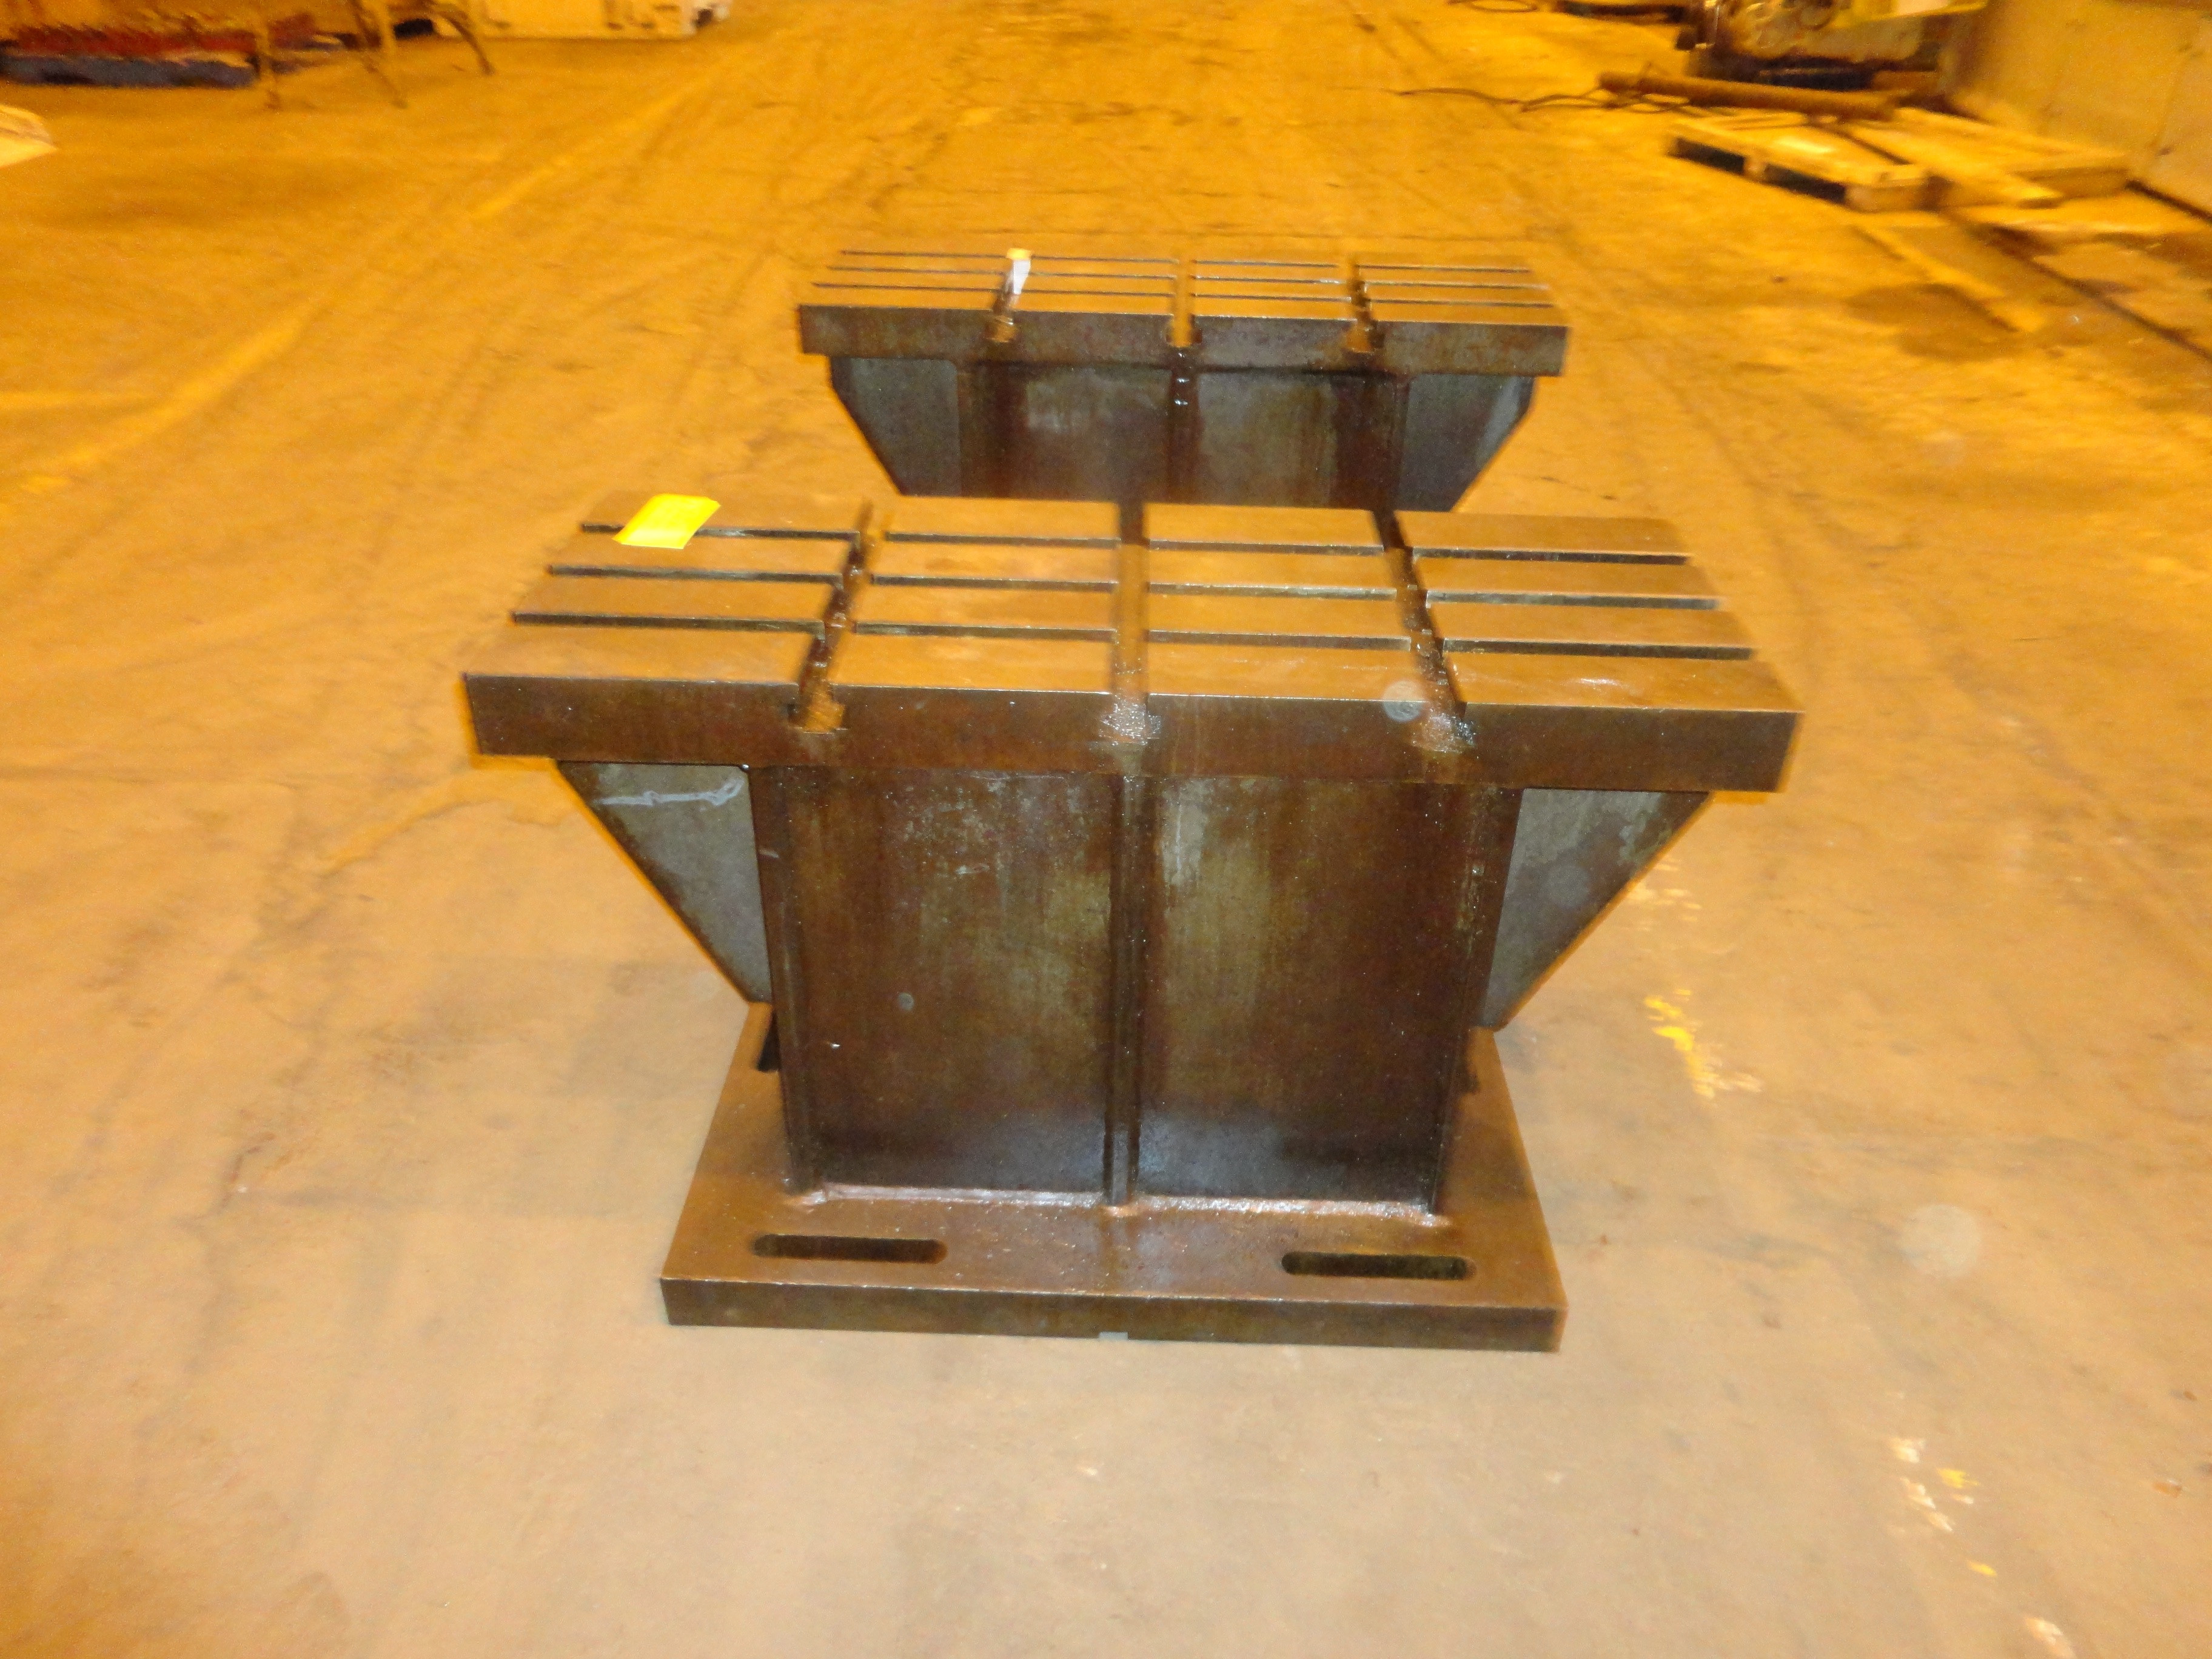 """Set of 2 T-Slotted Riser Blocks Knee Hold Down Plates 42""""L x 16"""" W x 25""""H - Image 13 of 13"""